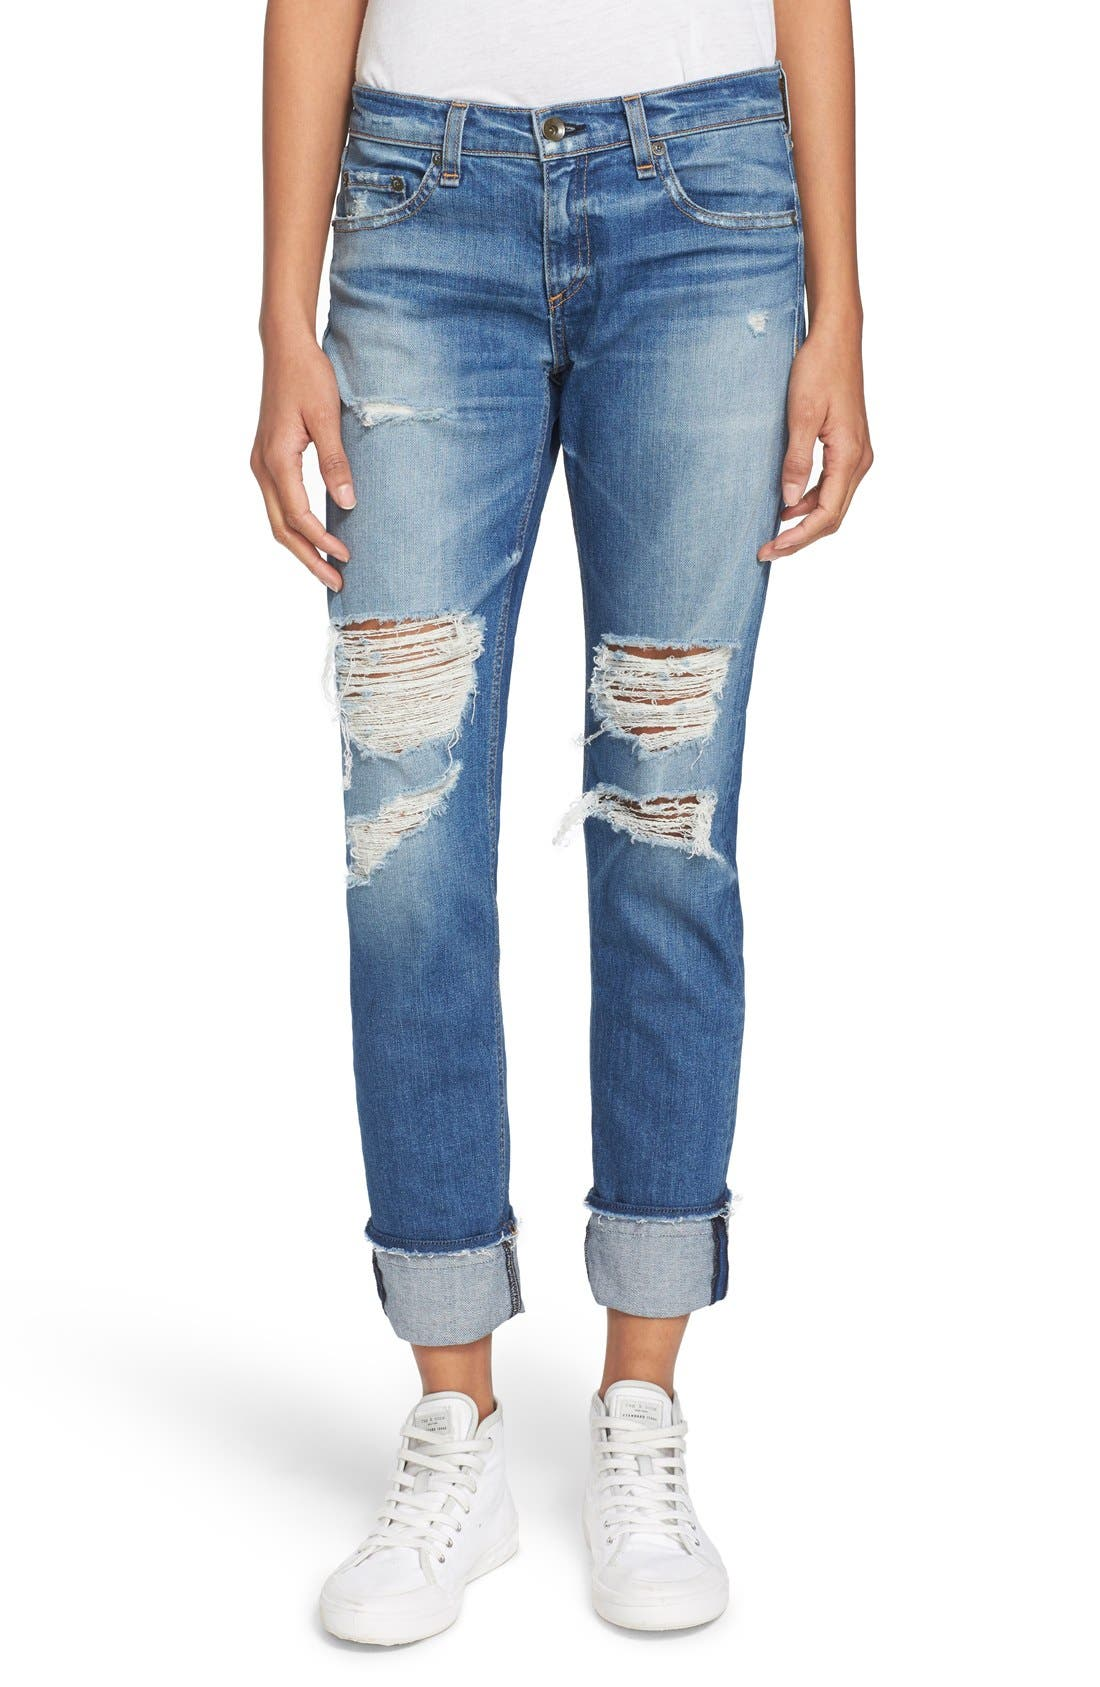 'The Dre' Slim Fit Boyfriend Jeans,                         Main,                         color, Kennedy